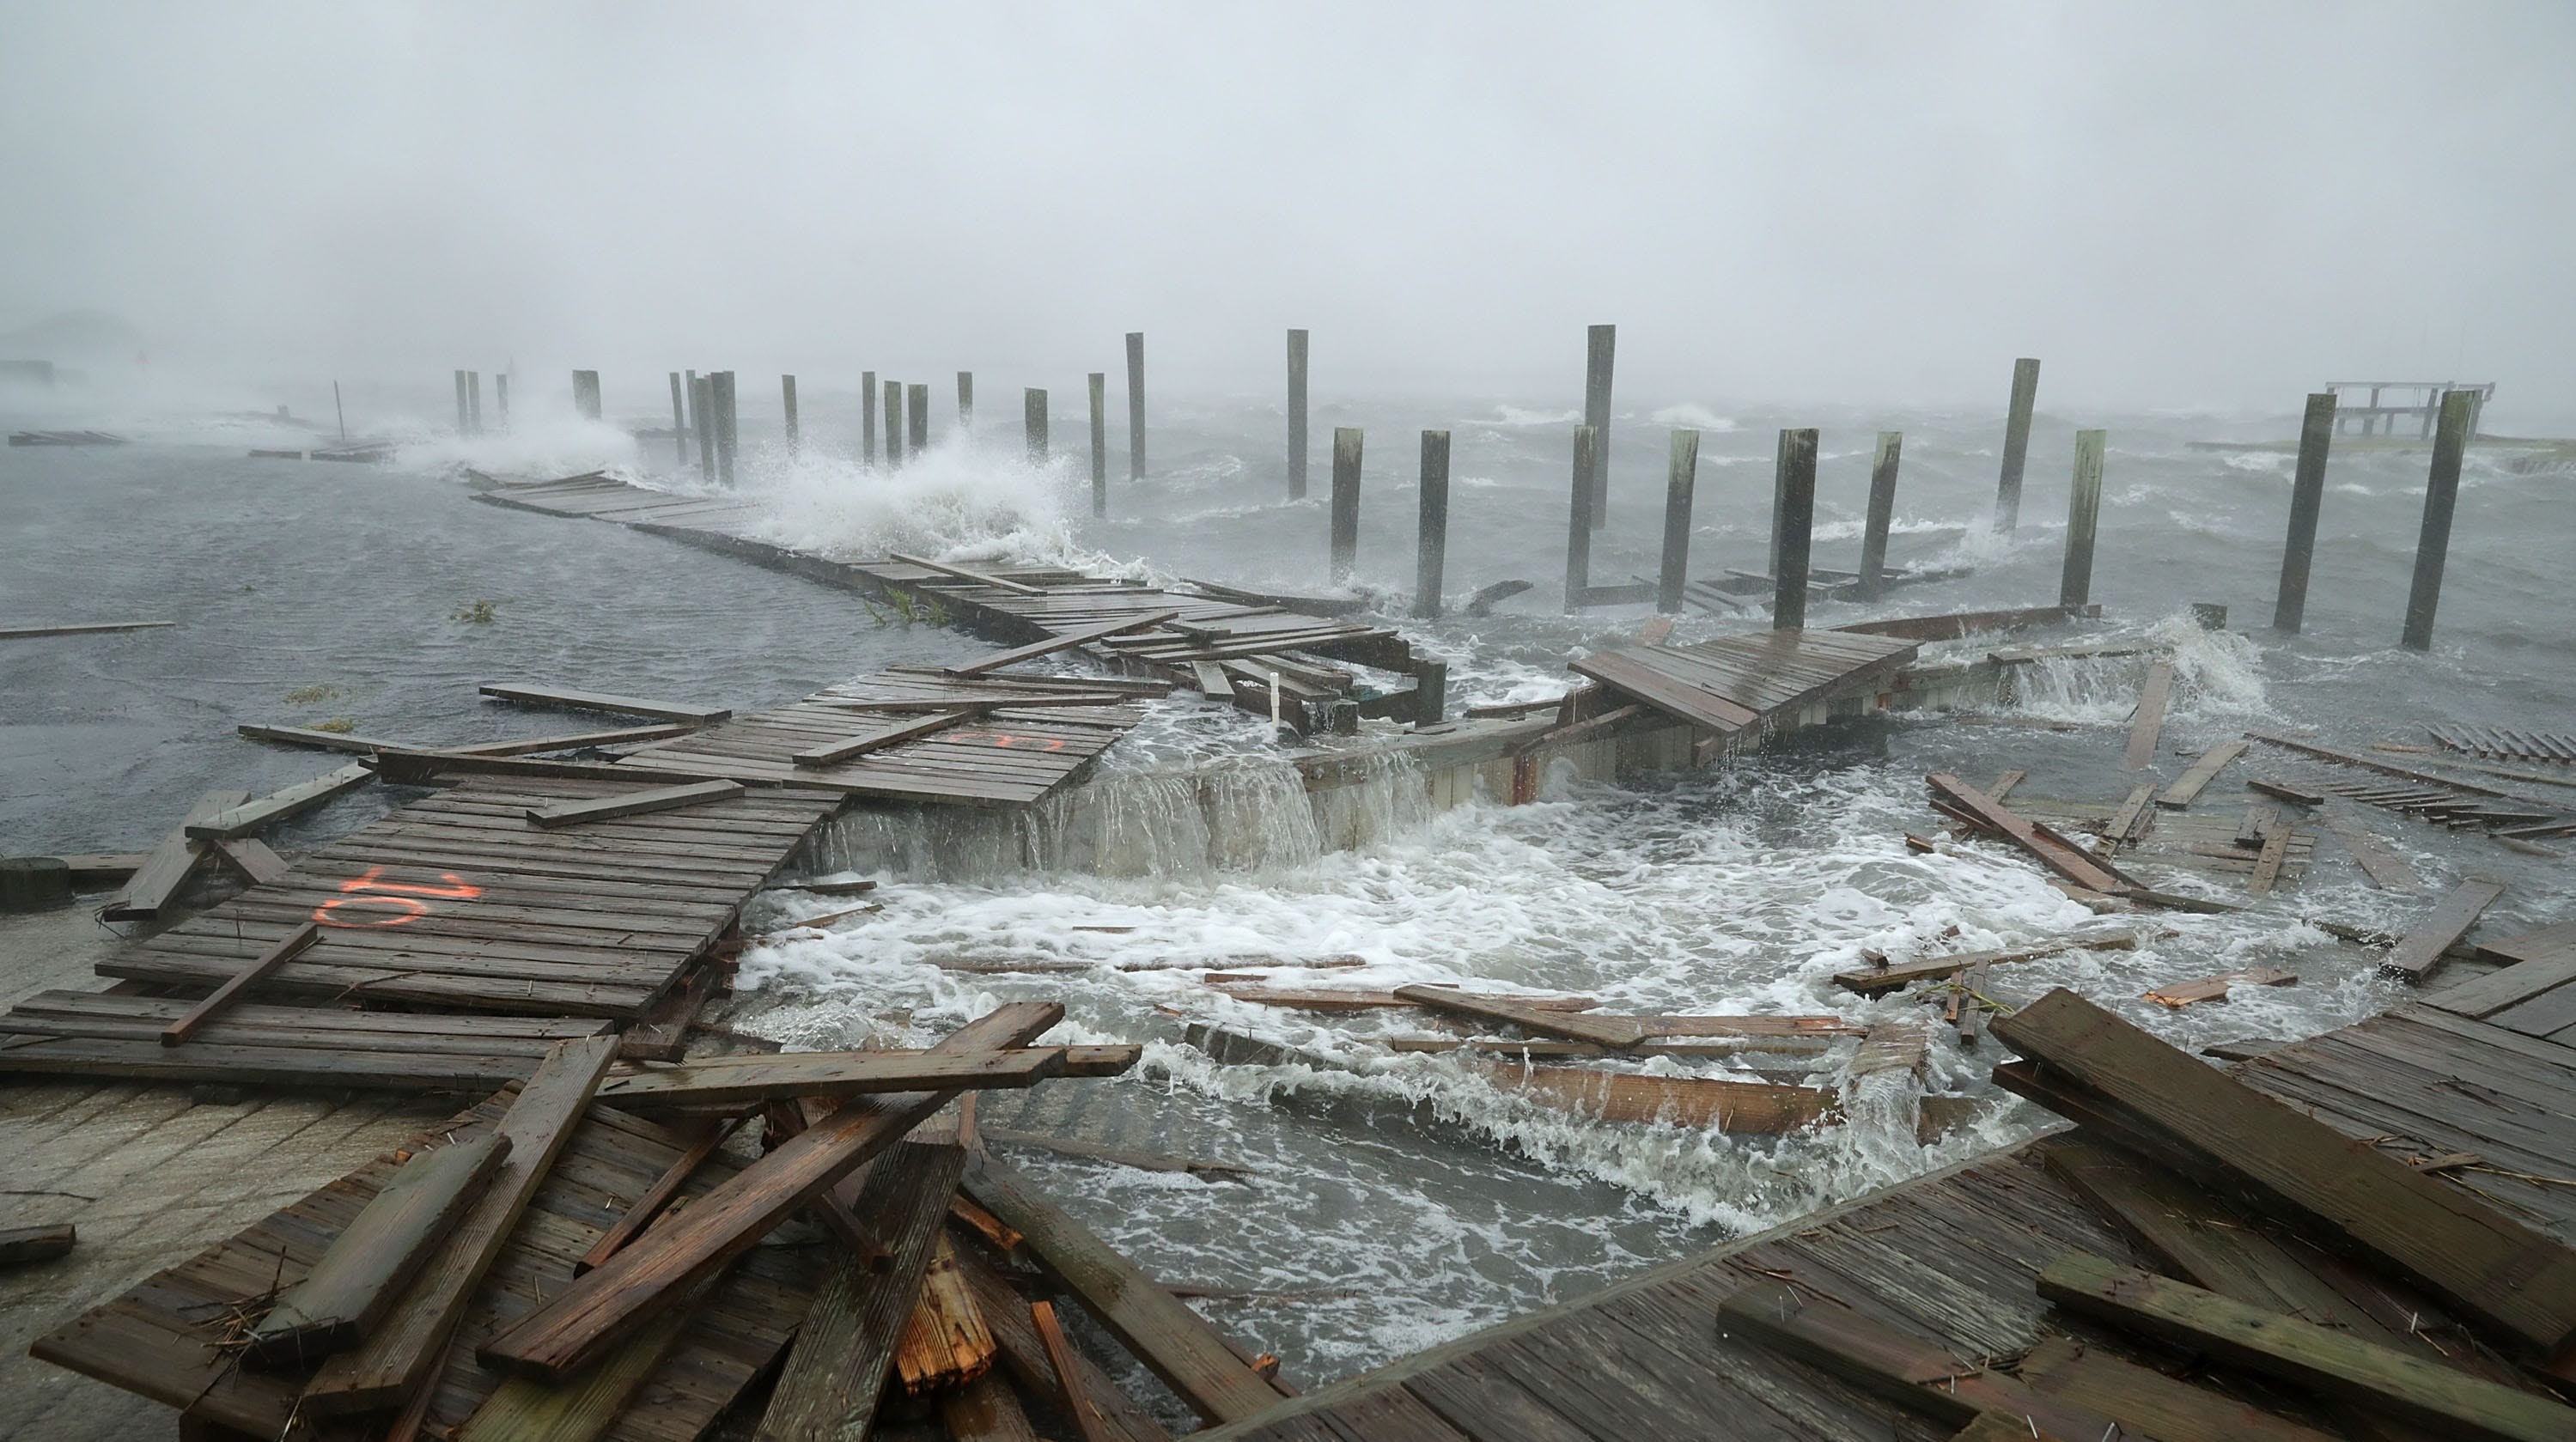 Portions of a boat dock and boardwalk are destroyed by powerful wind and waves as Hurricane Florence arrives September 13, 2018 in Atlantic Beach.